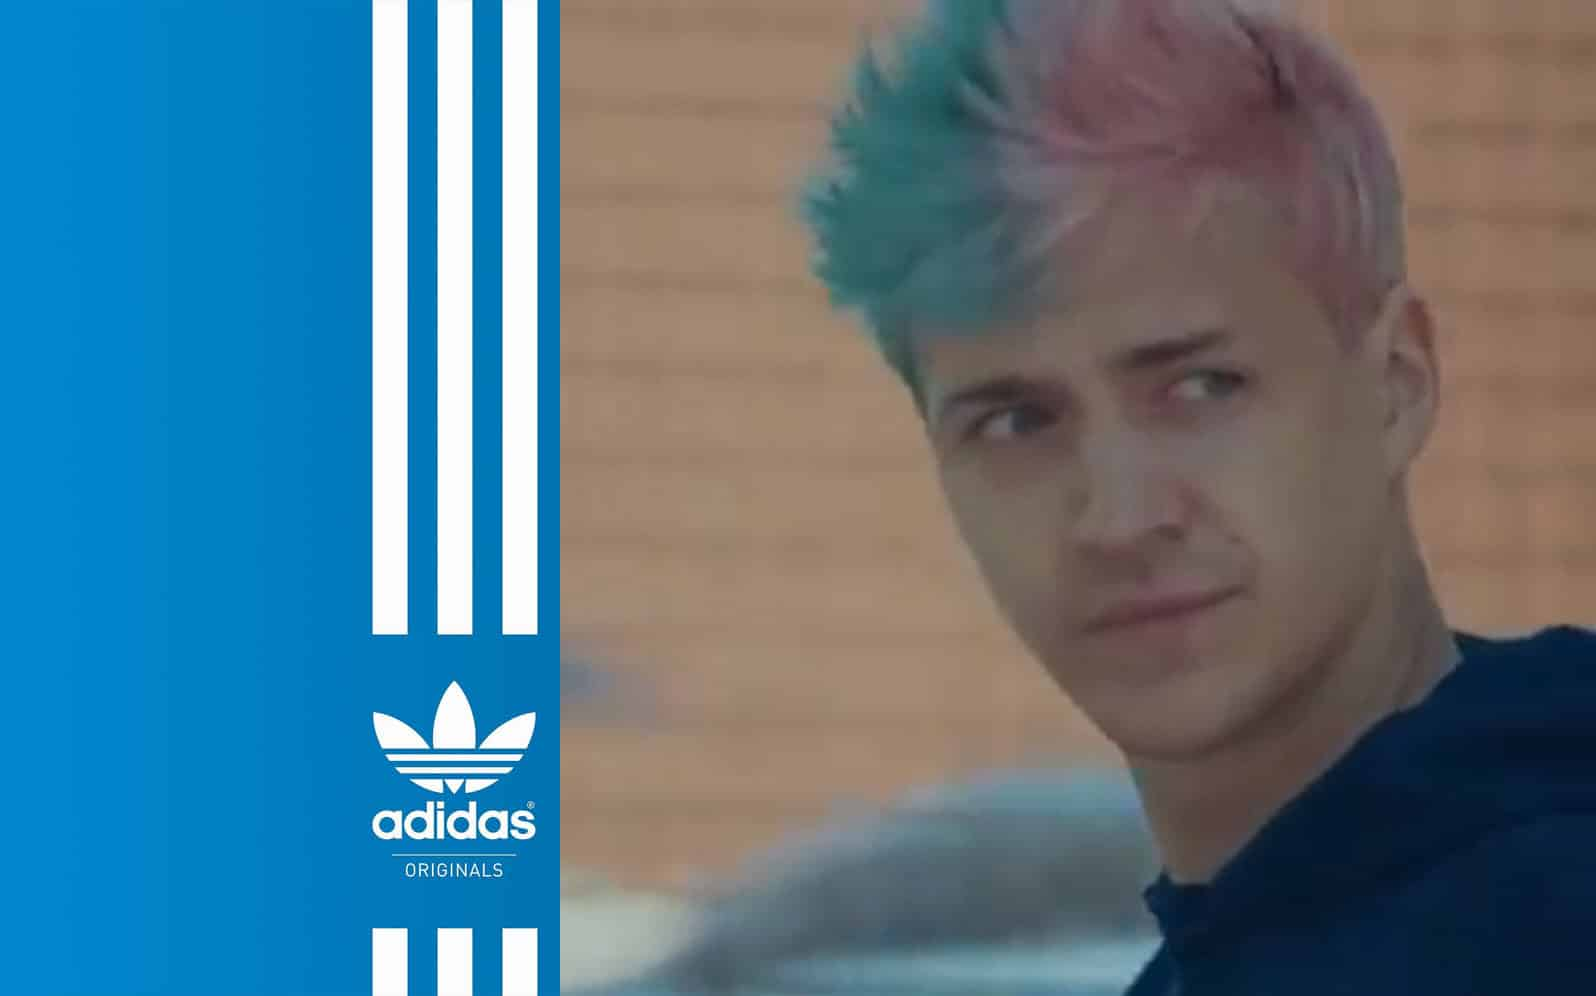 Ninja Partners With Adidas - Put the TIME IN